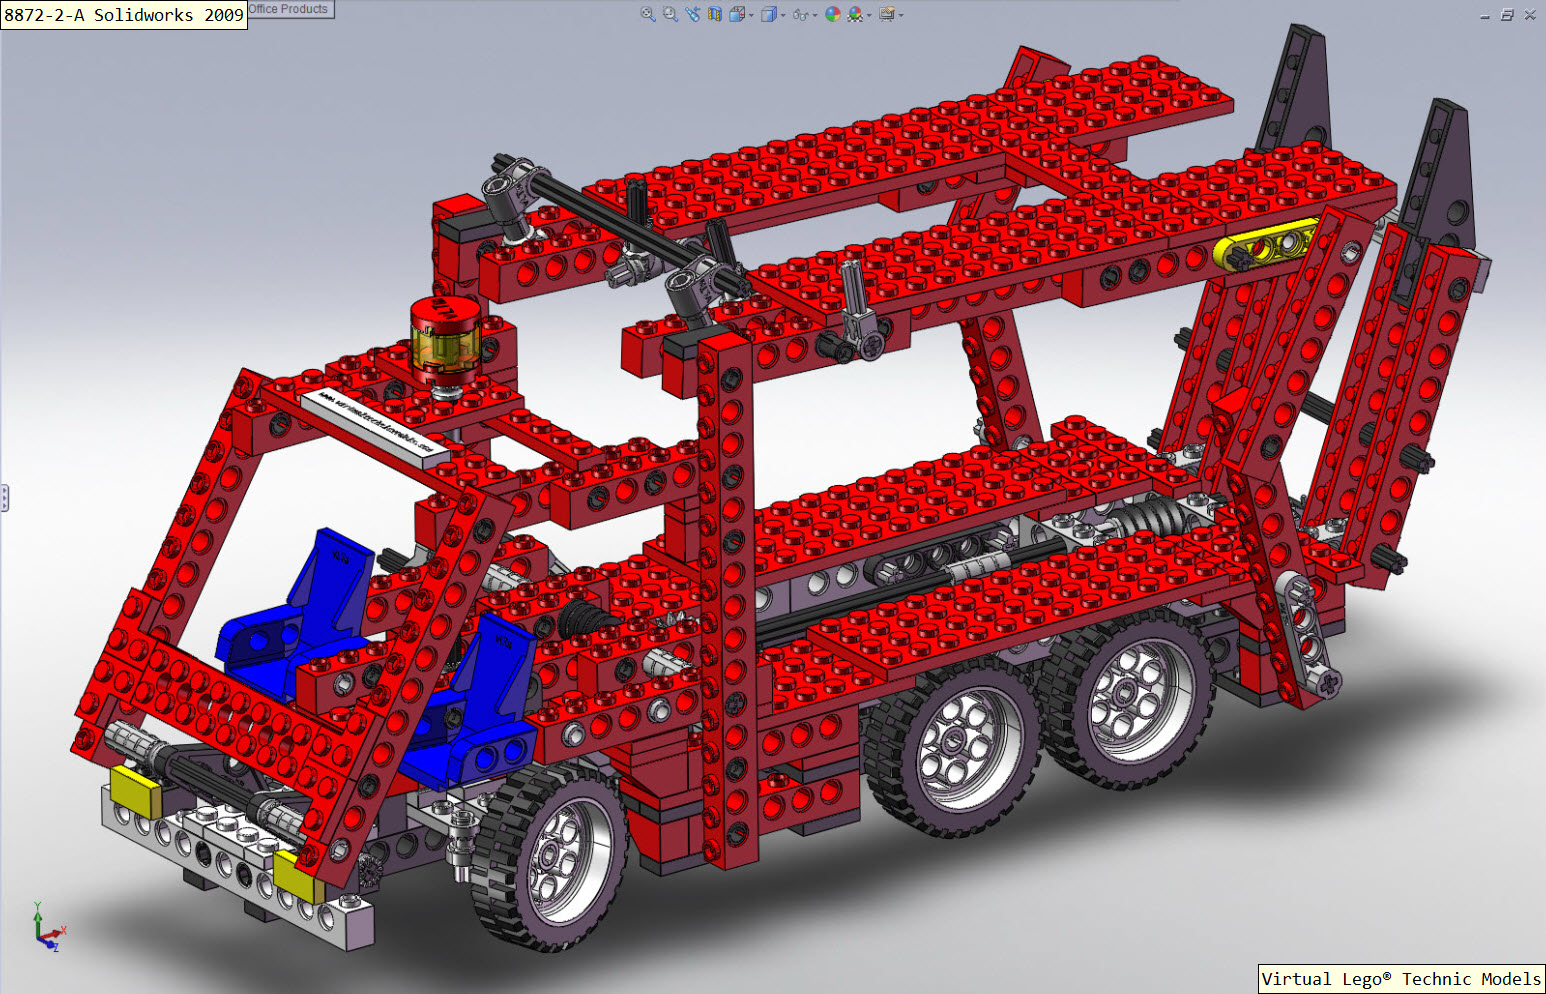 8872-2-a-03-solidworks_2009.jpg